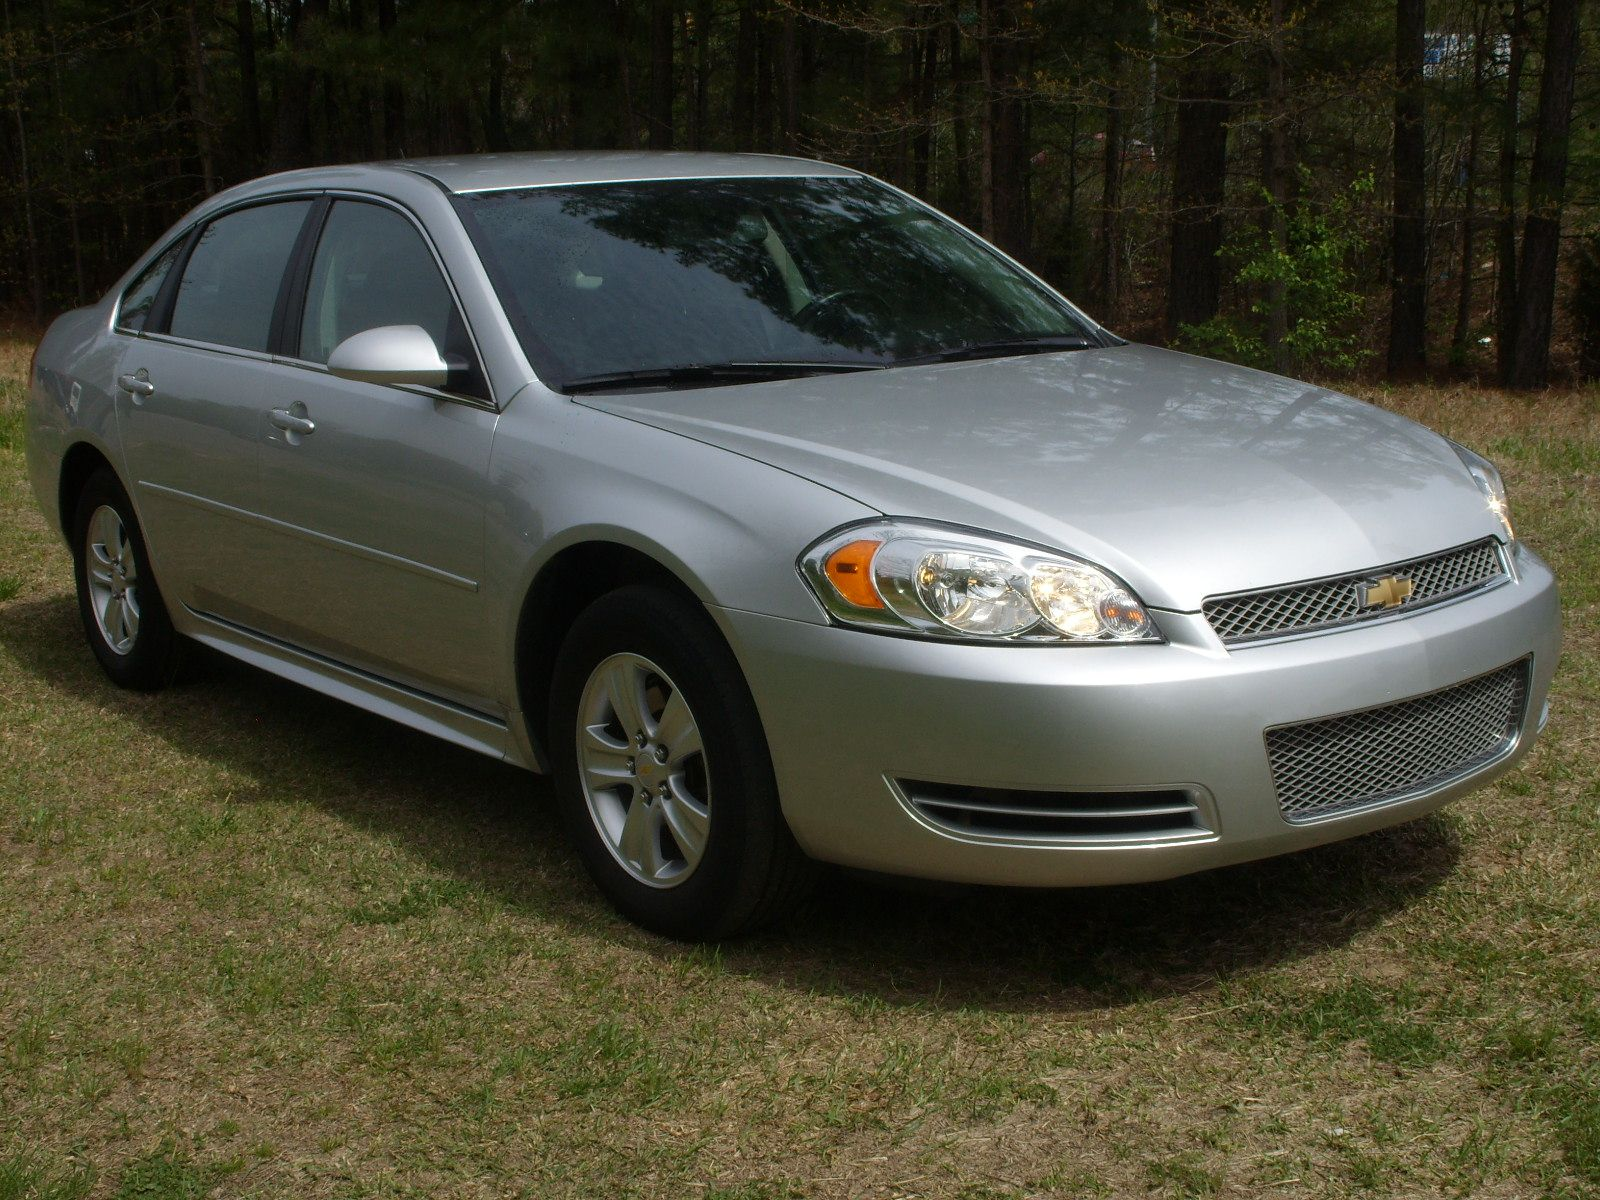 Used 2013 Chevrolet Impala For Sale Durham Nc With Images Chevrolet Impala Impala